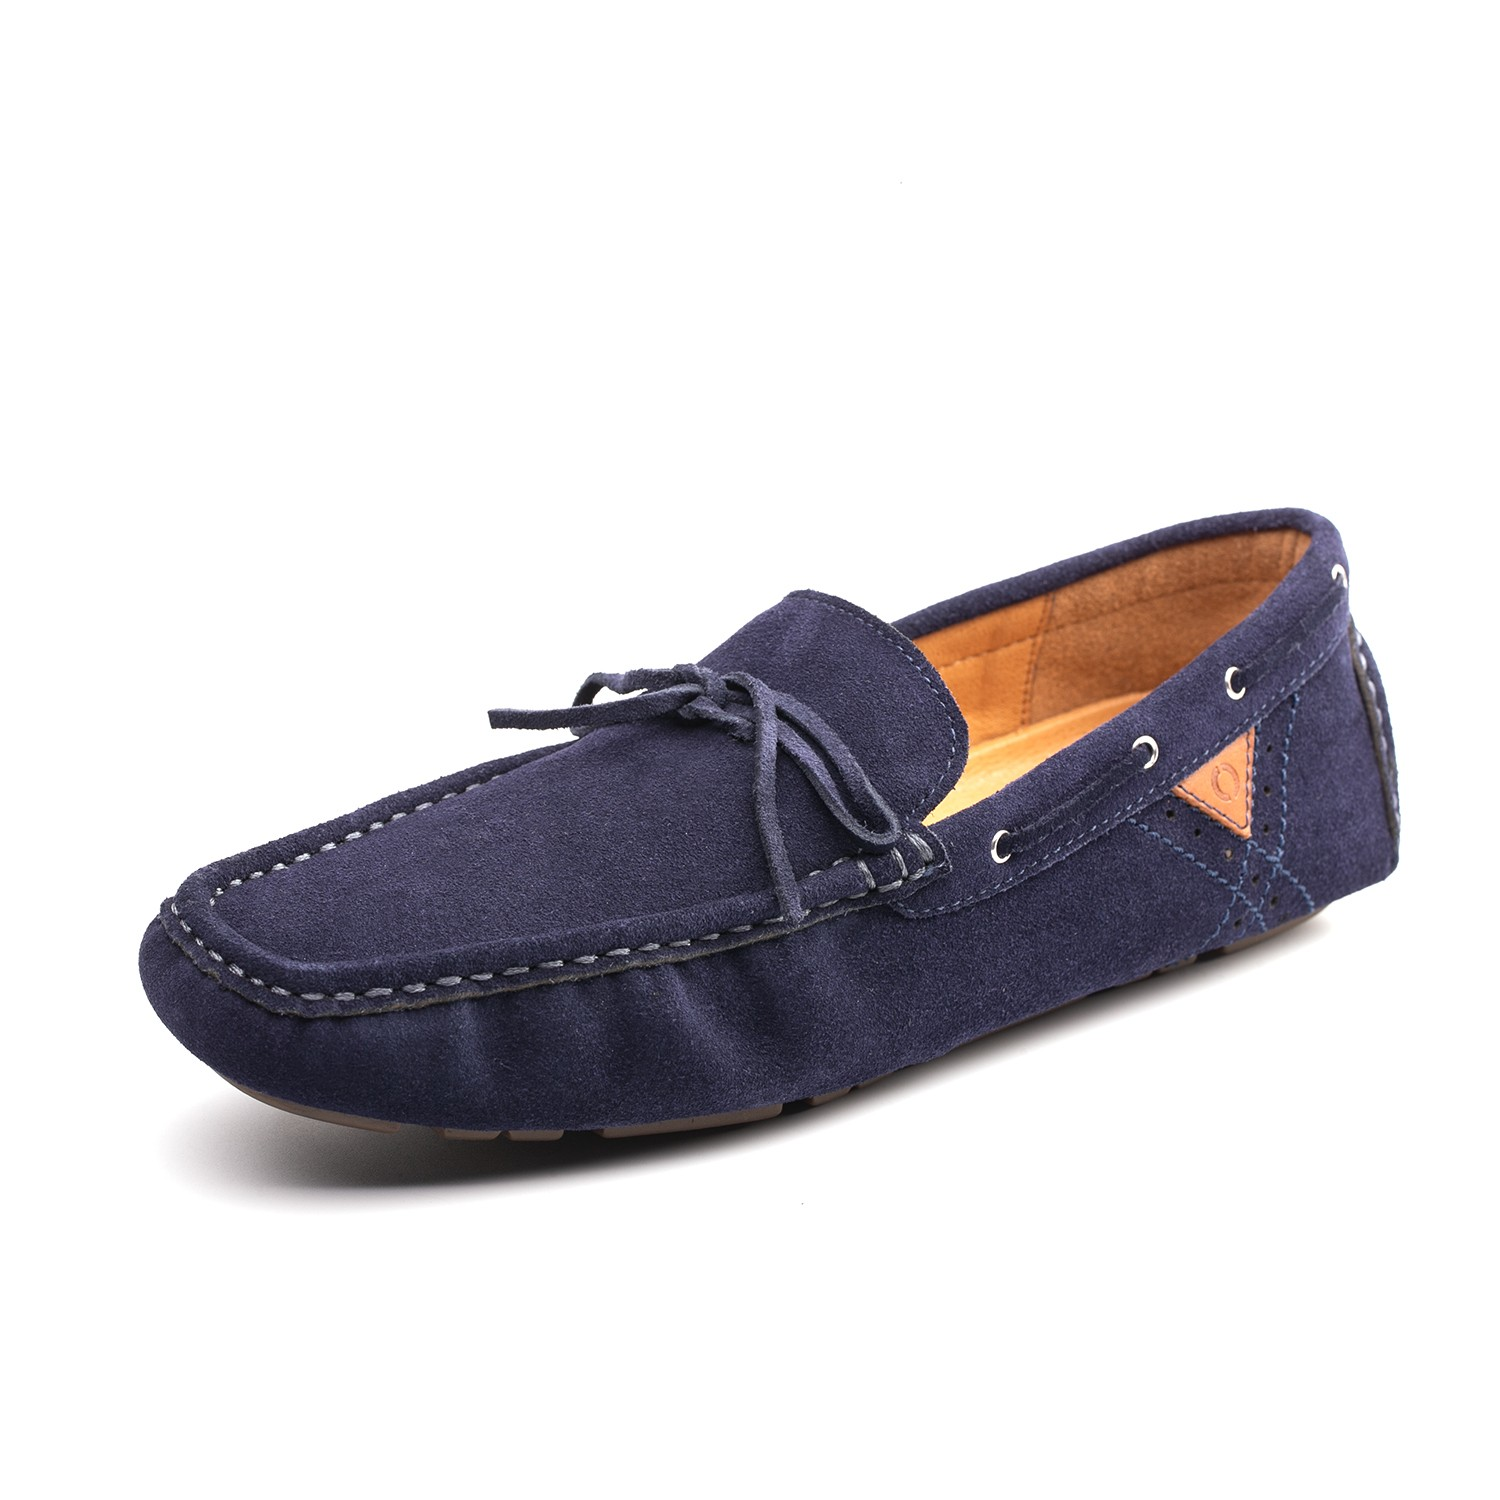 Omine M19002 Men Casual Flat Loafer Bean Shoes - Navy Blue US 9